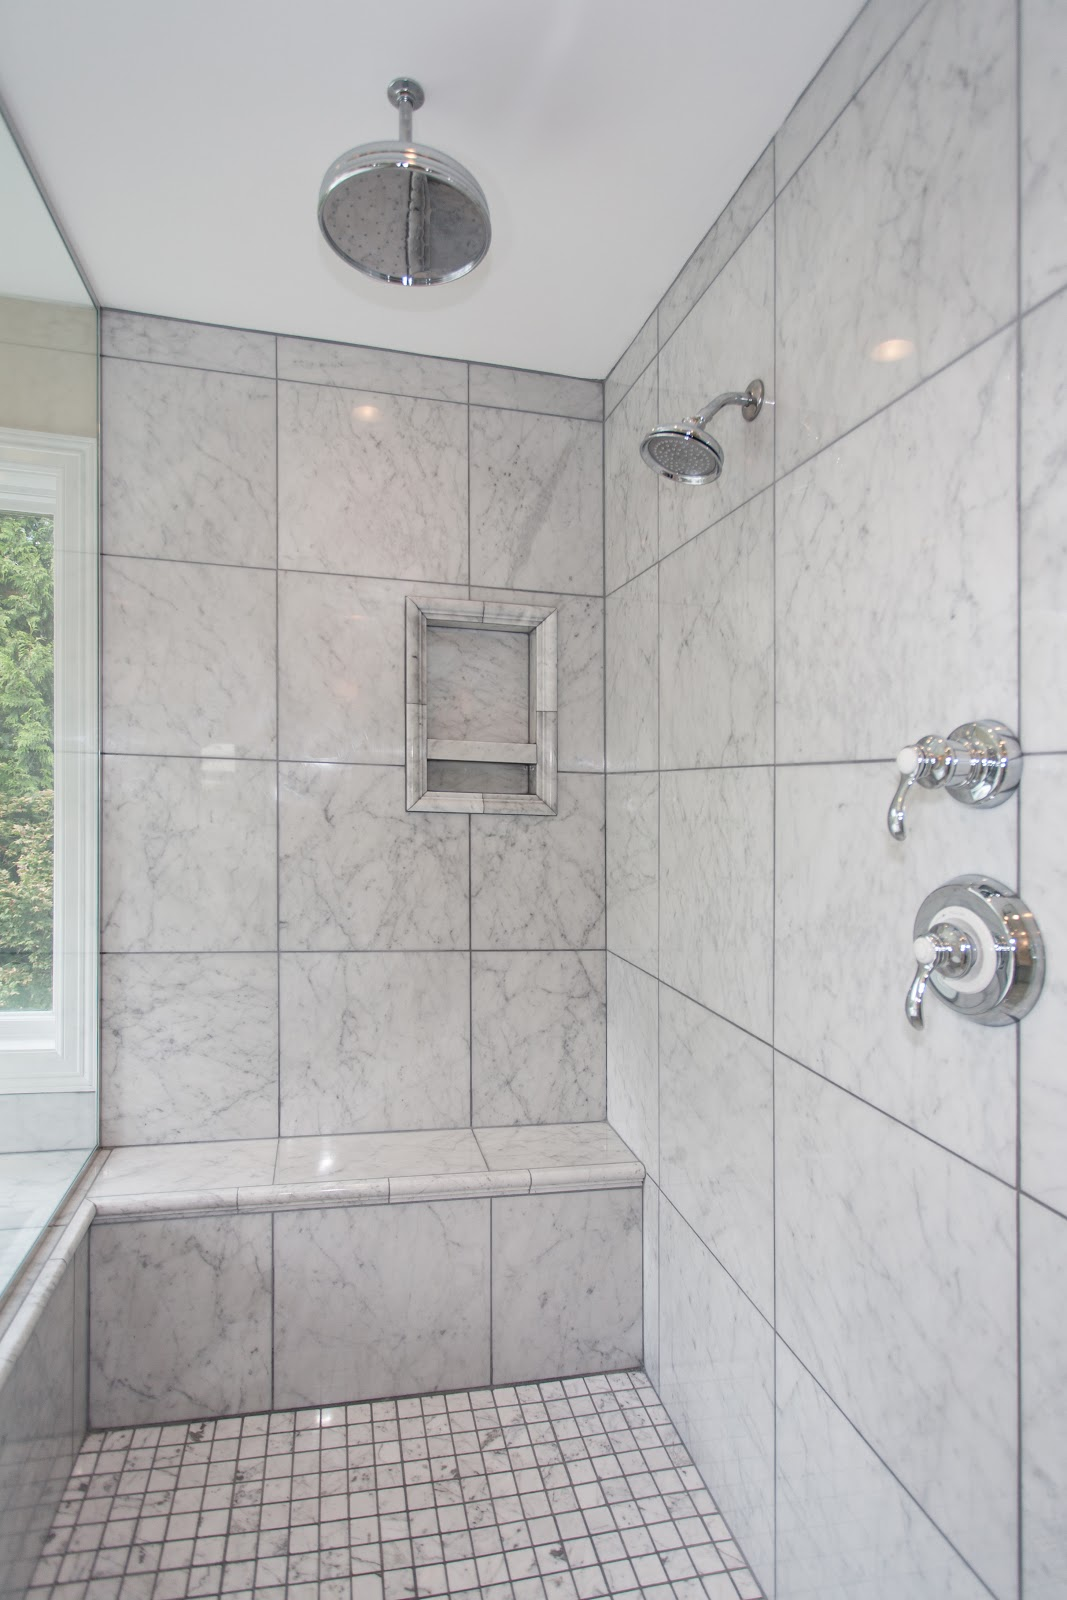 Designing The Perfect Shower Build Your House Yourself